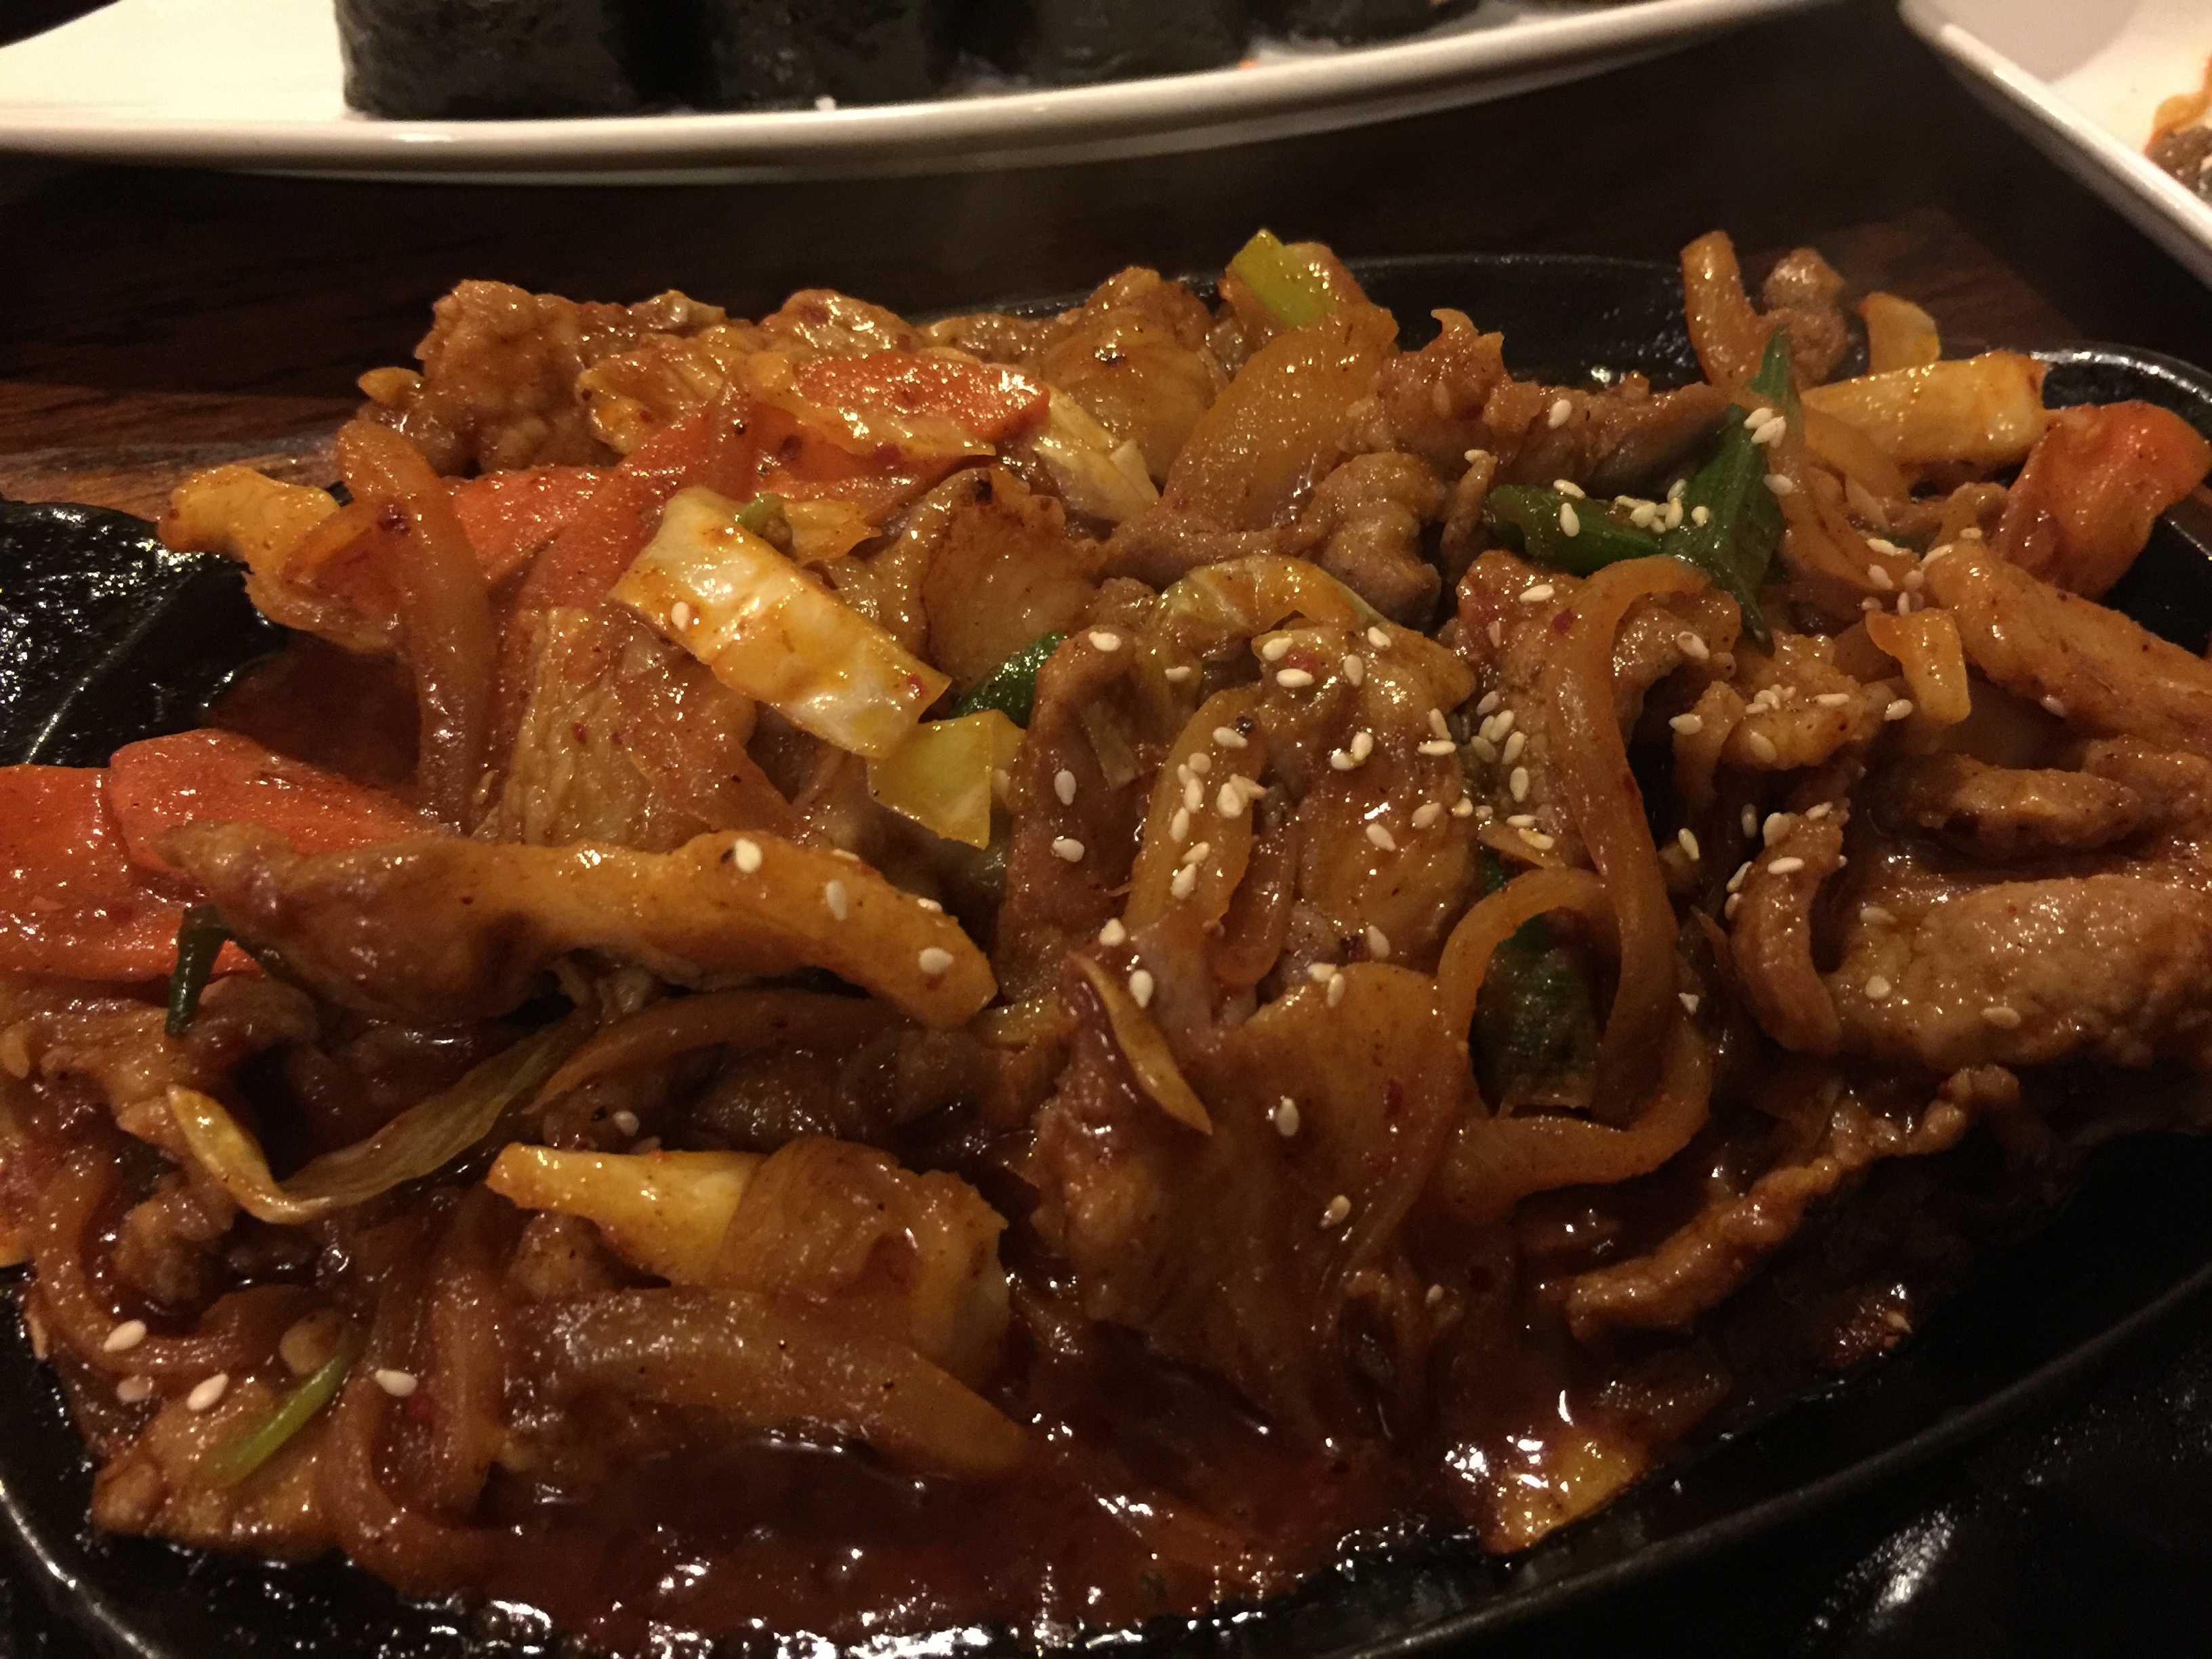 jaeyuk bokkeum spicy pork with vegetables Sobahn korean restaurant in Kansas City